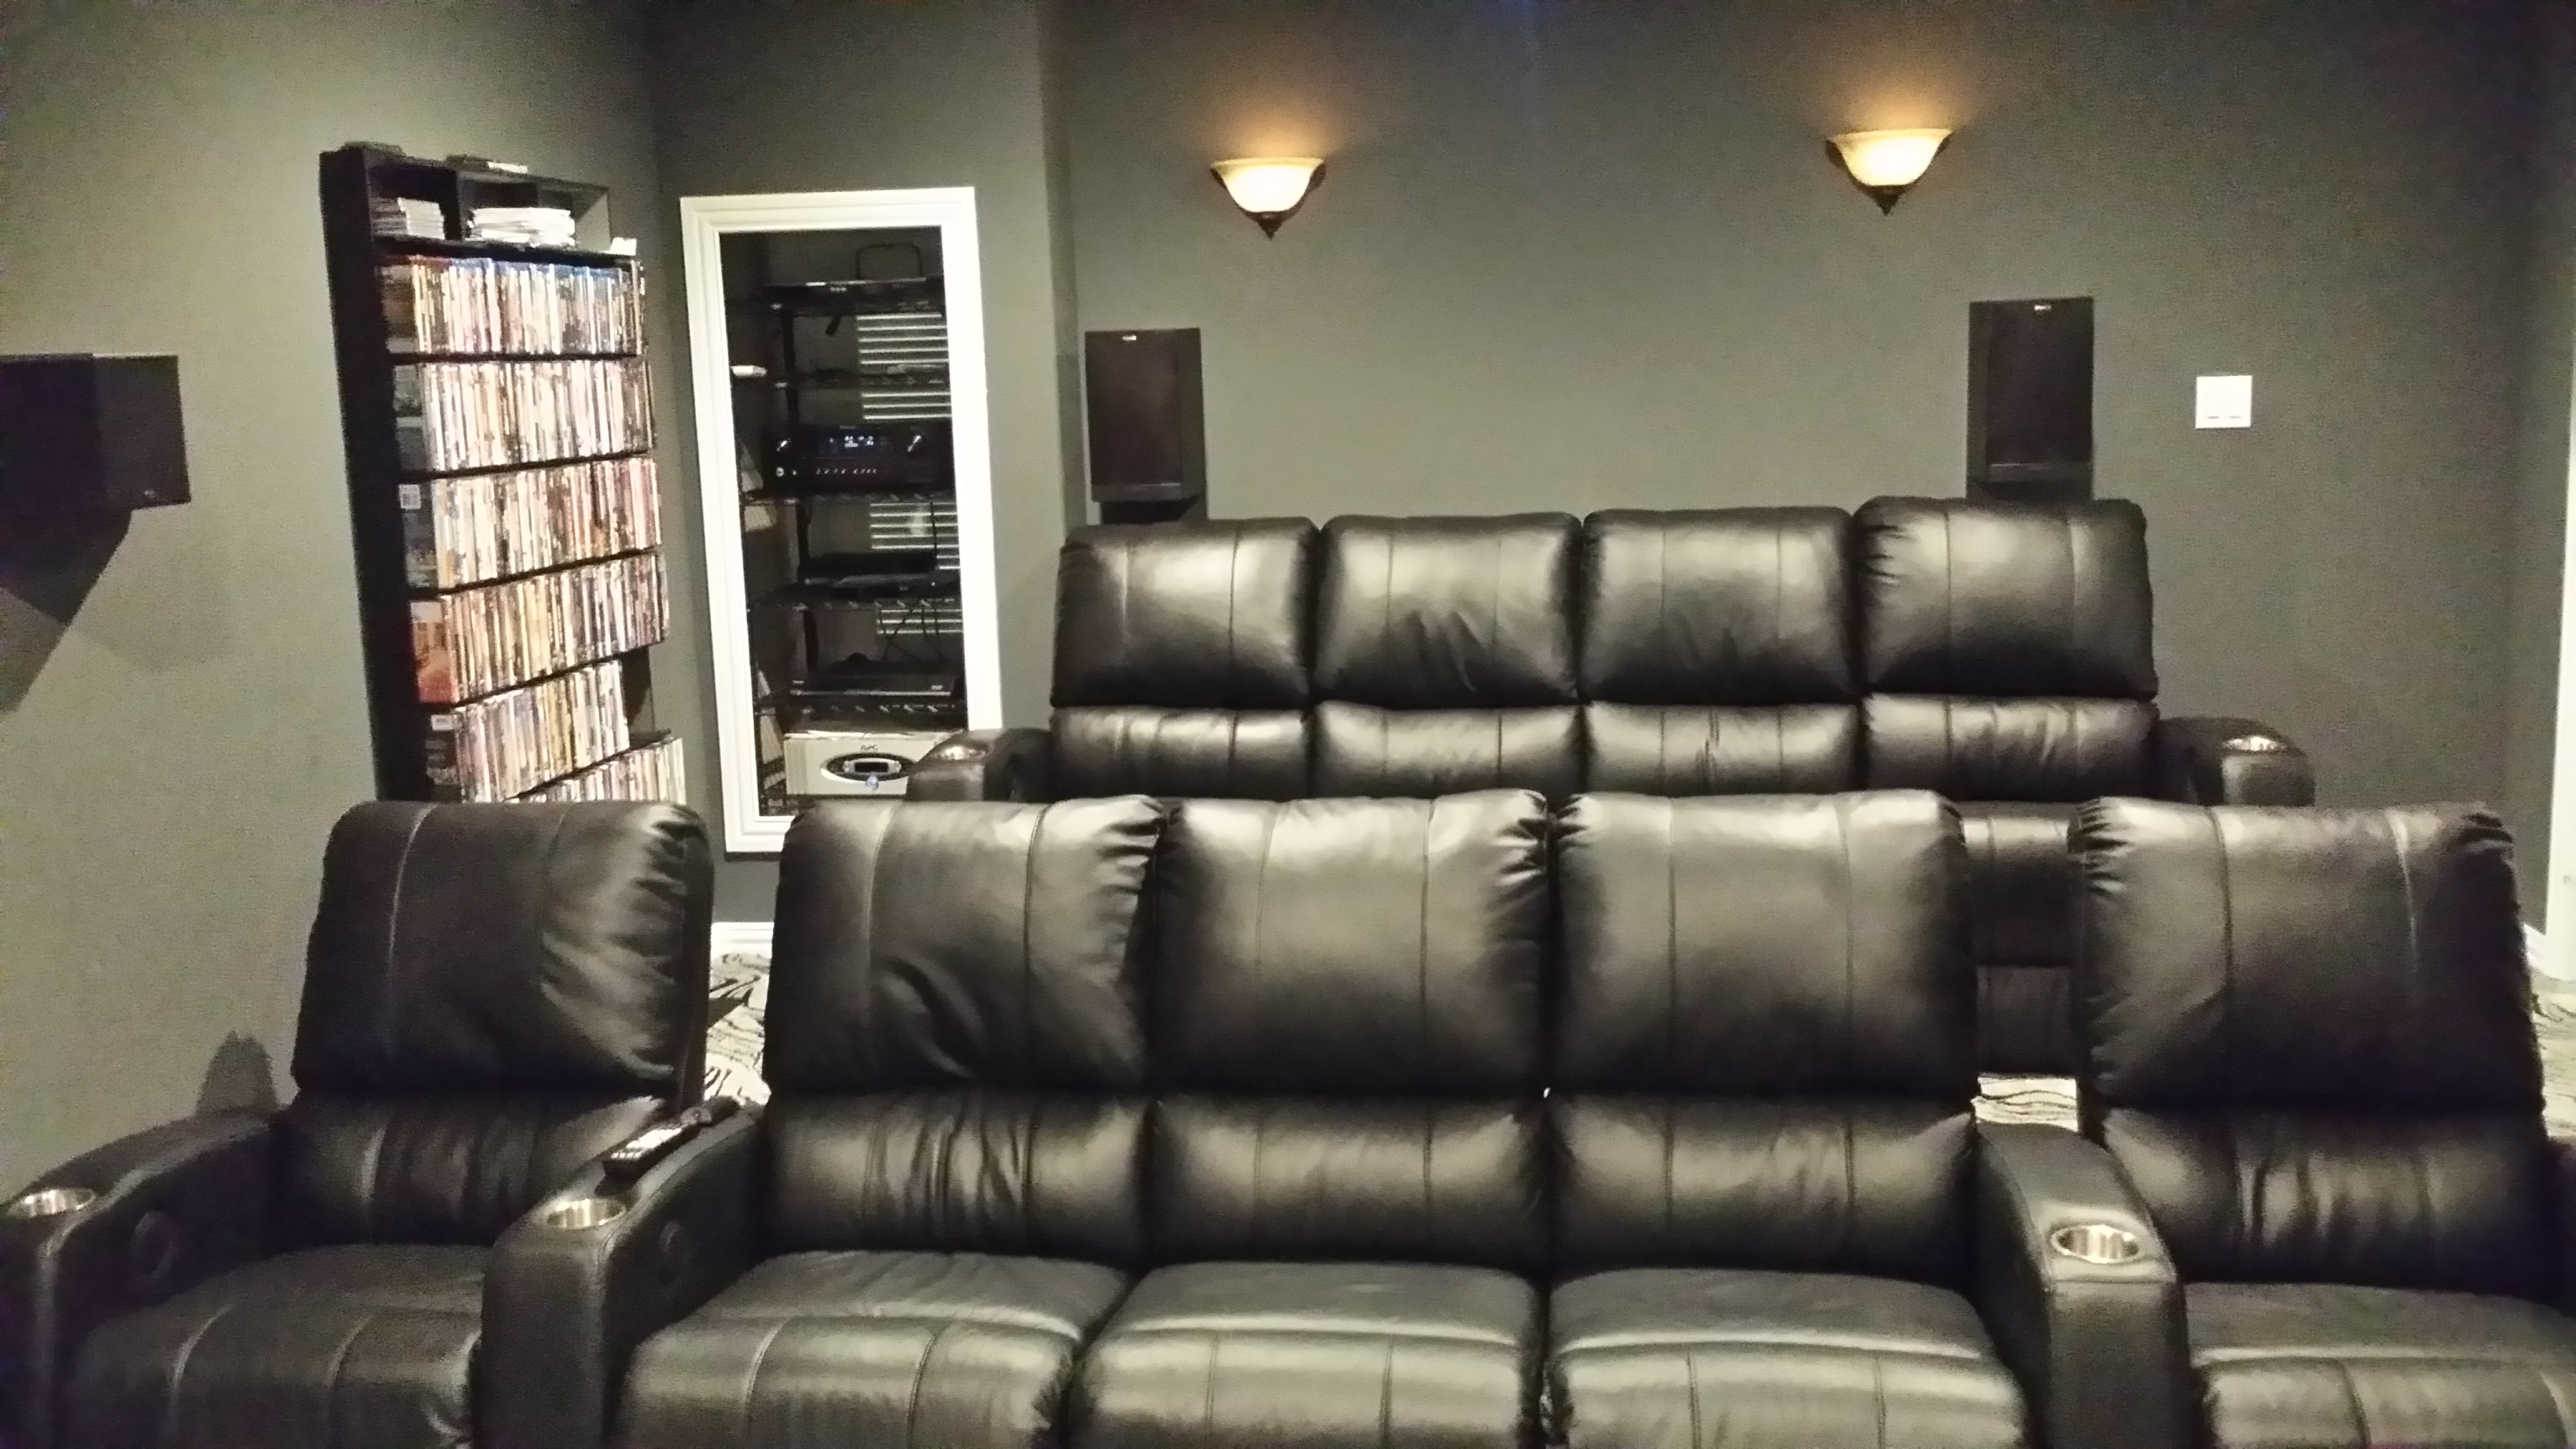 Movie Chairs For Home Theaters Palliser Pacifico Home Theatre Chairs